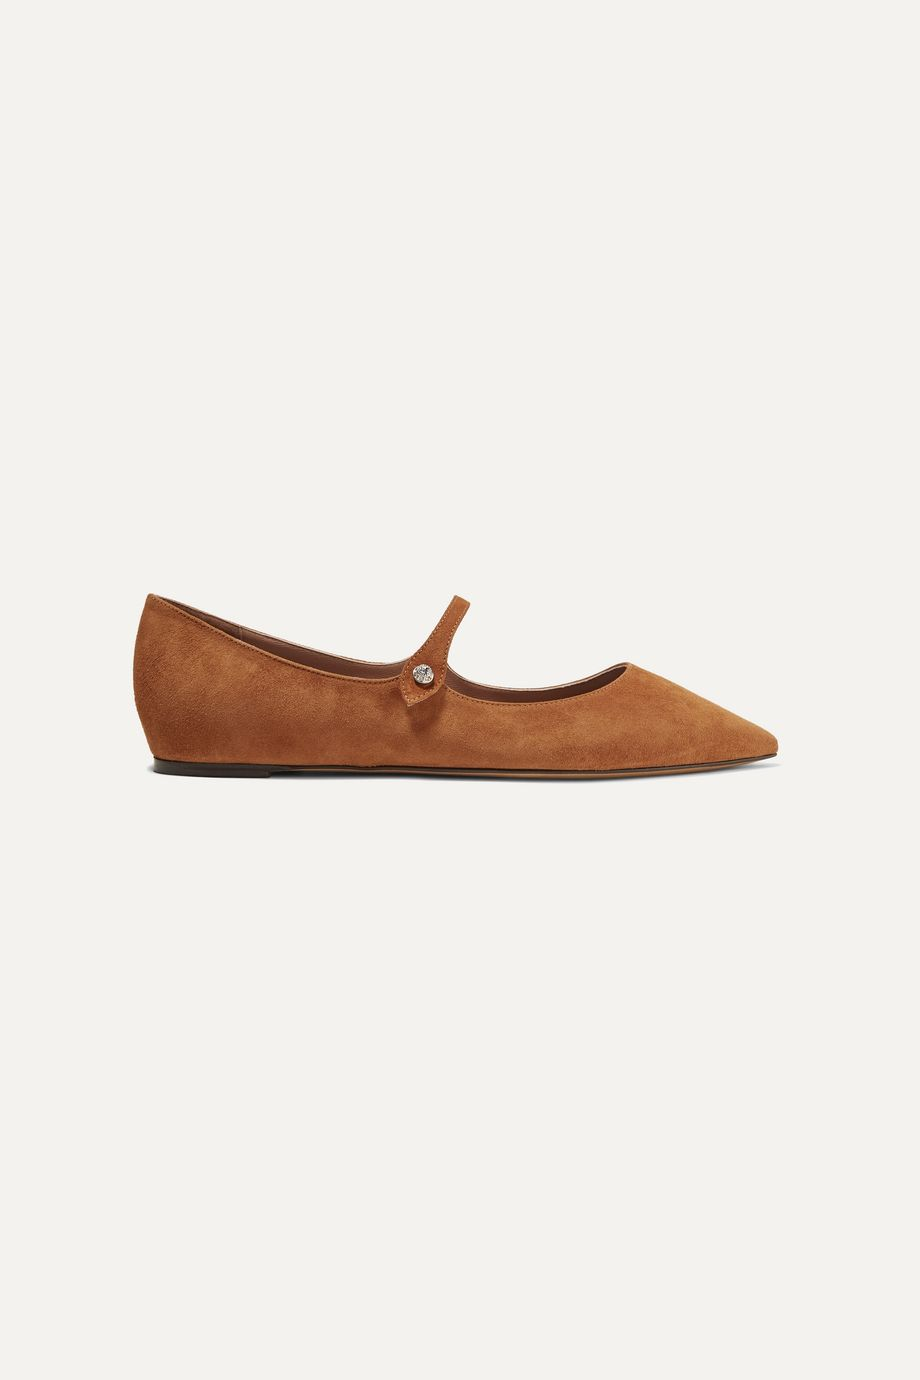 Tabitha Simmons Hermione suede point-toe flats